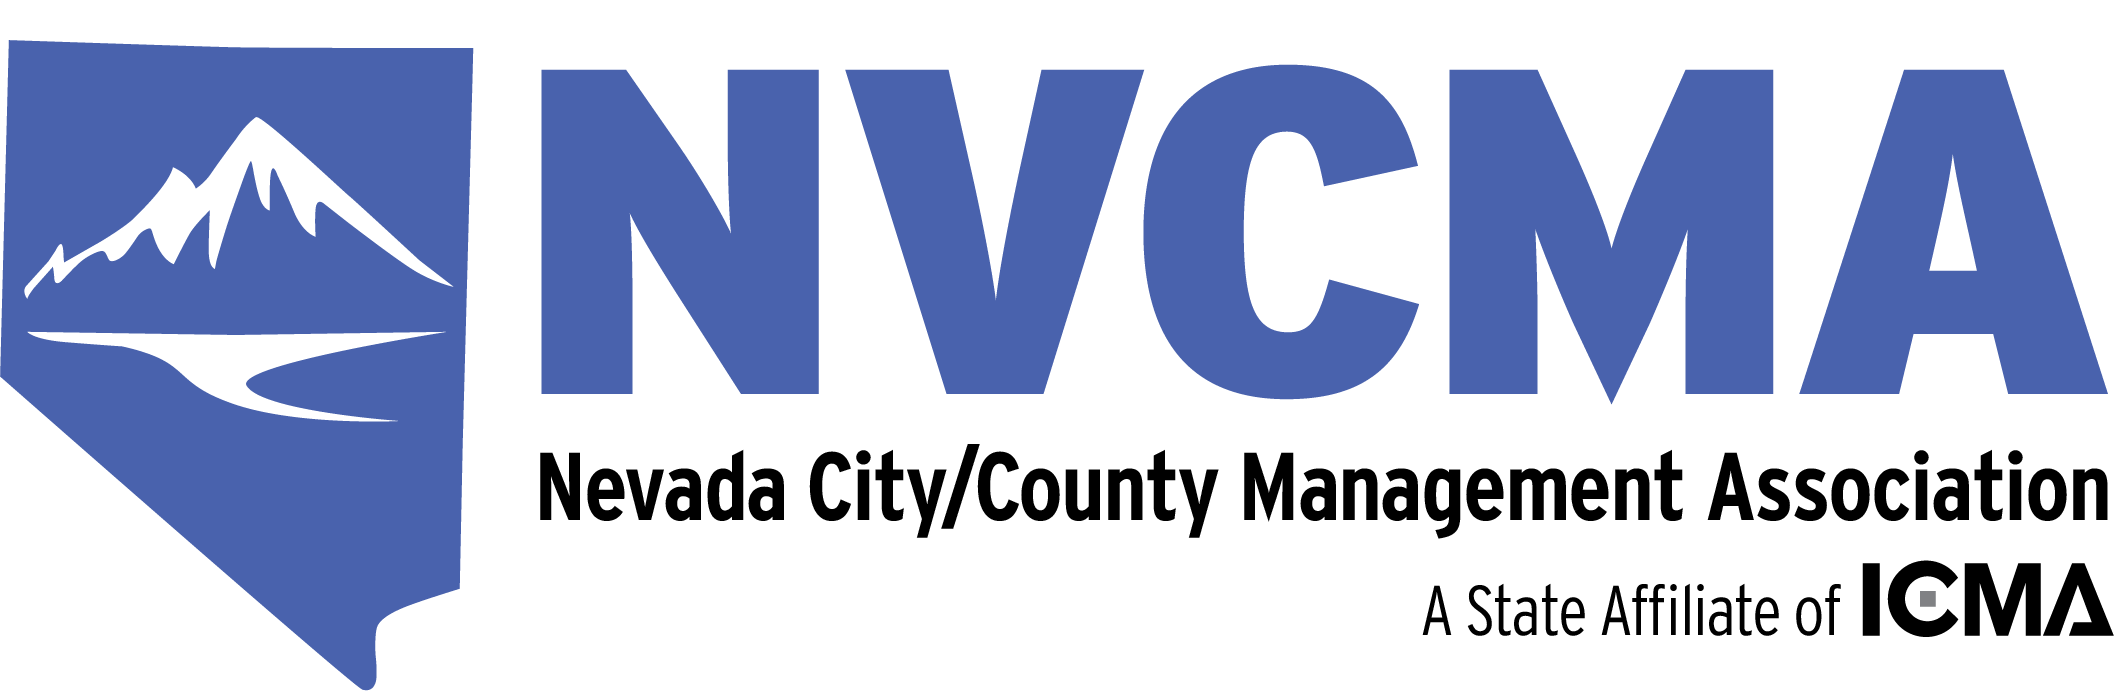 Nevada City/County Management Association